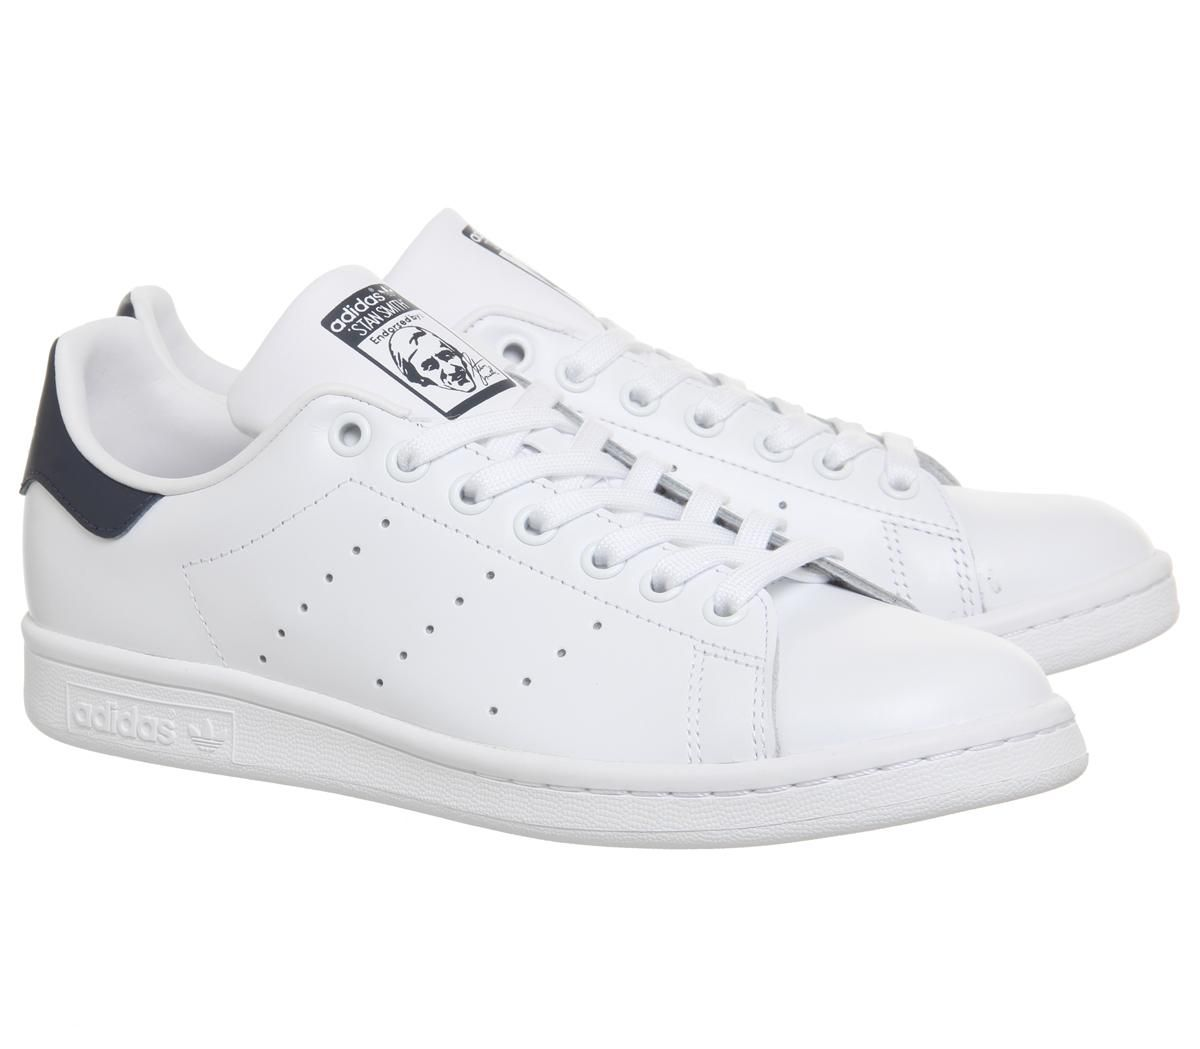 promo code cozy fresh performance sportswear Détails sur Femmes adidas Stan Smith Flash Baskets Blanc Bleu Baskets